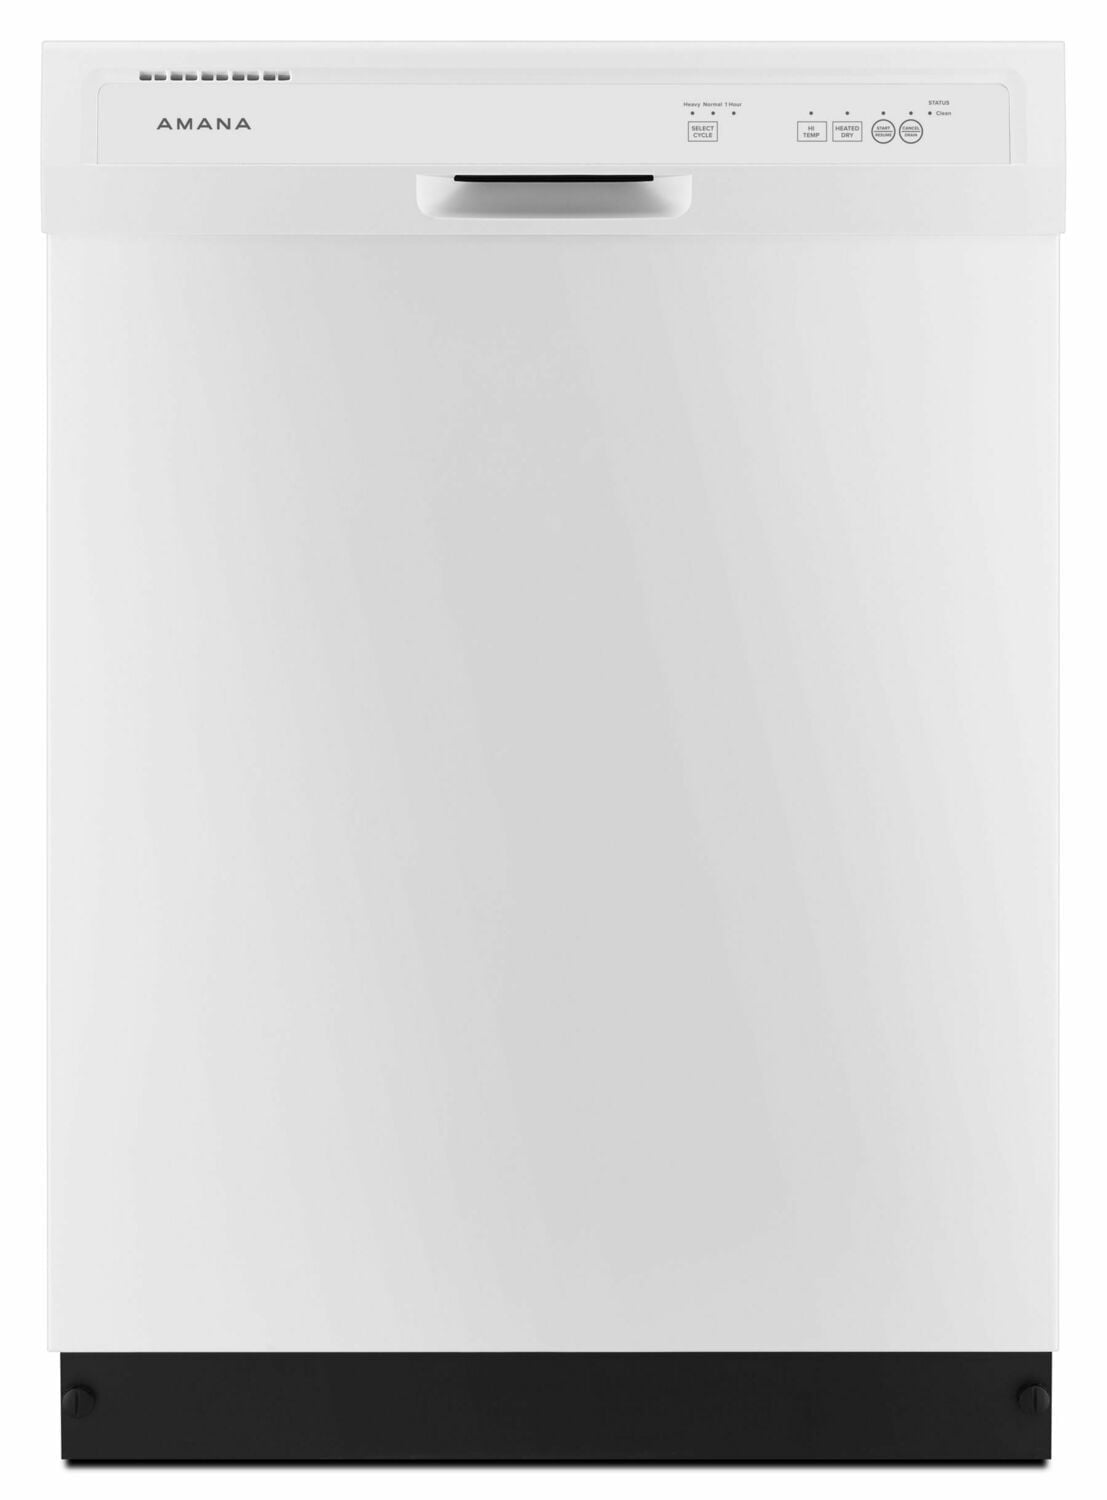 Load image into Gallery viewer, Amana ADB1400AGW Dishwasher With Triple Filter Wash System - White